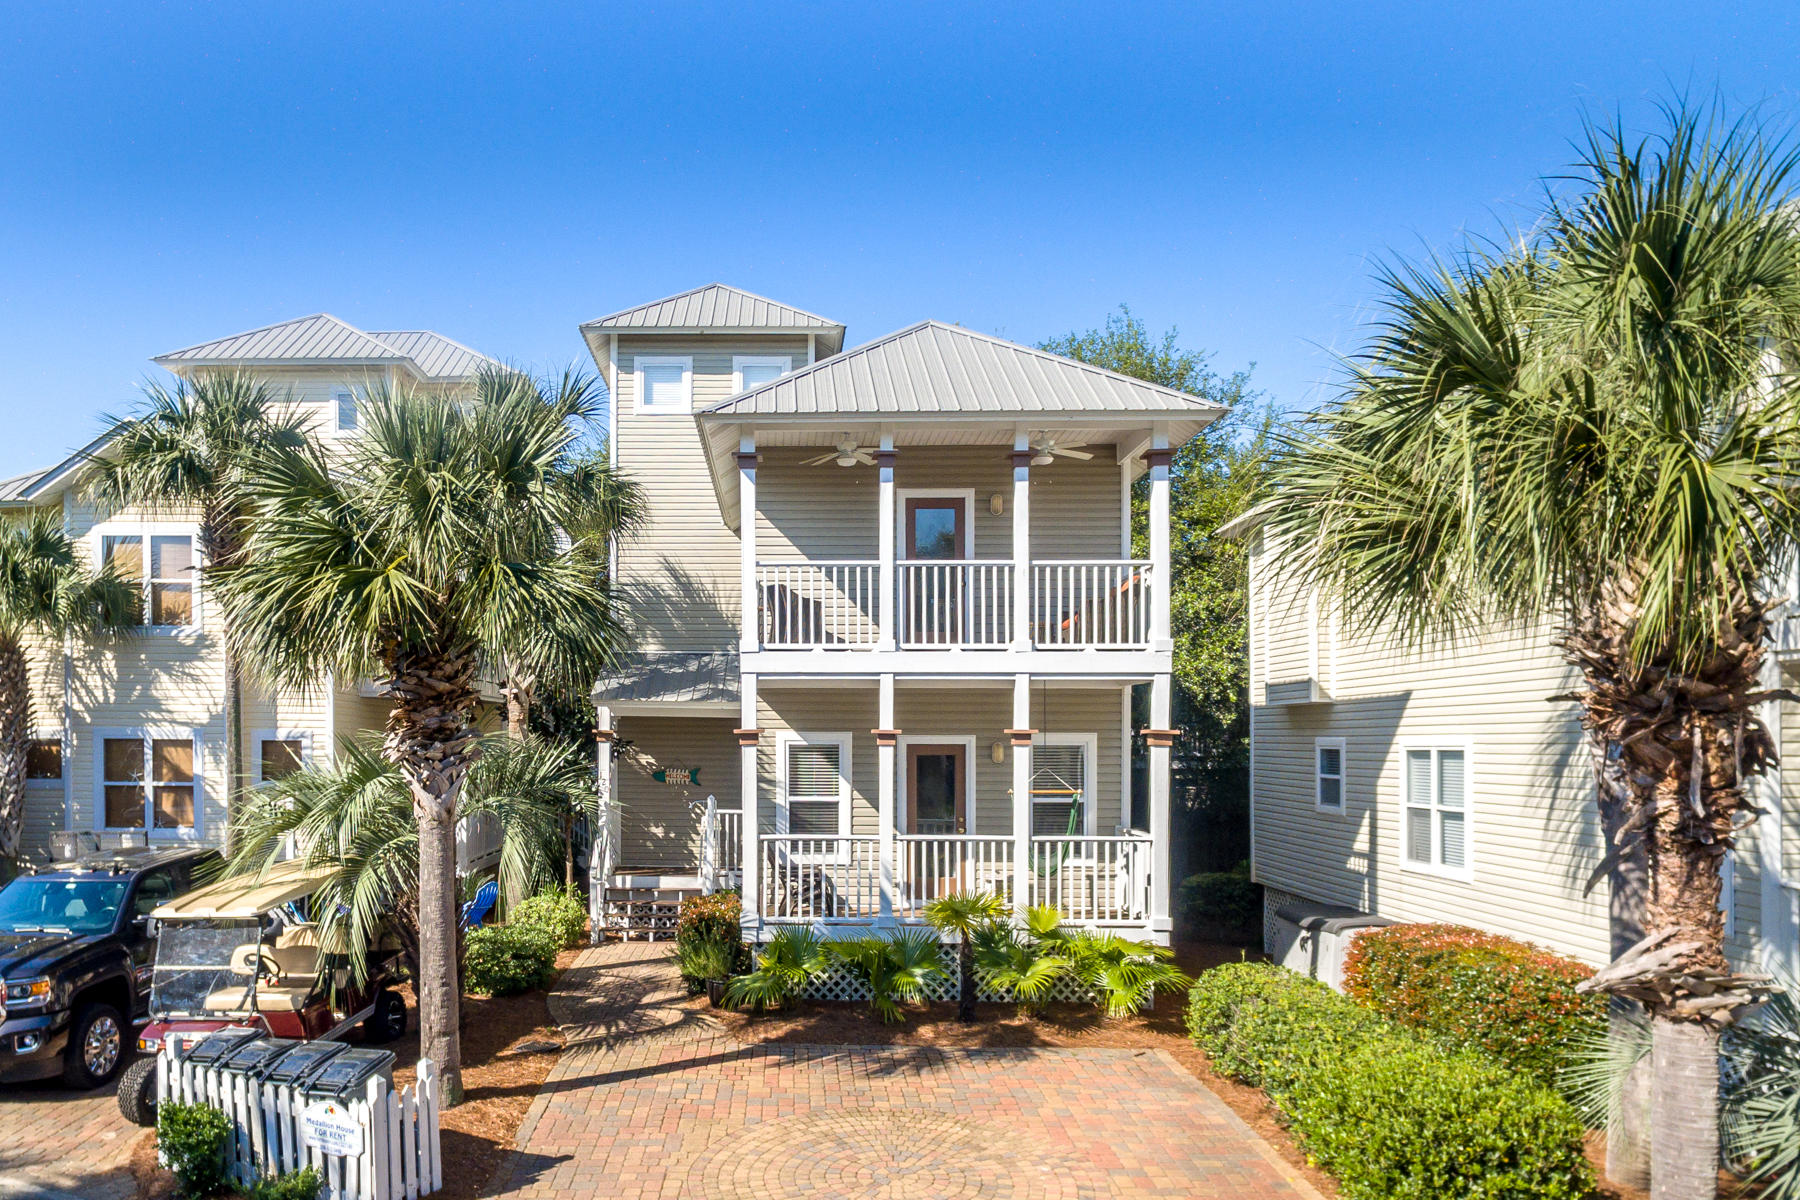 This cozy 3-story townhome, known as ''Medallion House,'' enjoys a fabulous location south of Scenic Highway 30A, directly across from the community pool and just a short walk or bike ride from a fully equipped walkover to the stunning Emerald Coast beach! The first floor features a master suite and 2 additional bedrooms with shared bath. The main gathering area encompasses the second floor; while the 3rd floor is a loft bedroom. Decks expand the living space to the outdoors. The pool facility includes dressing rooms and a dining area, for larger gatherings. An excellent getaway home, rental property, and/or place to retire to the sun, sand and laid-back lifestyle of the Beaches of South Walton!